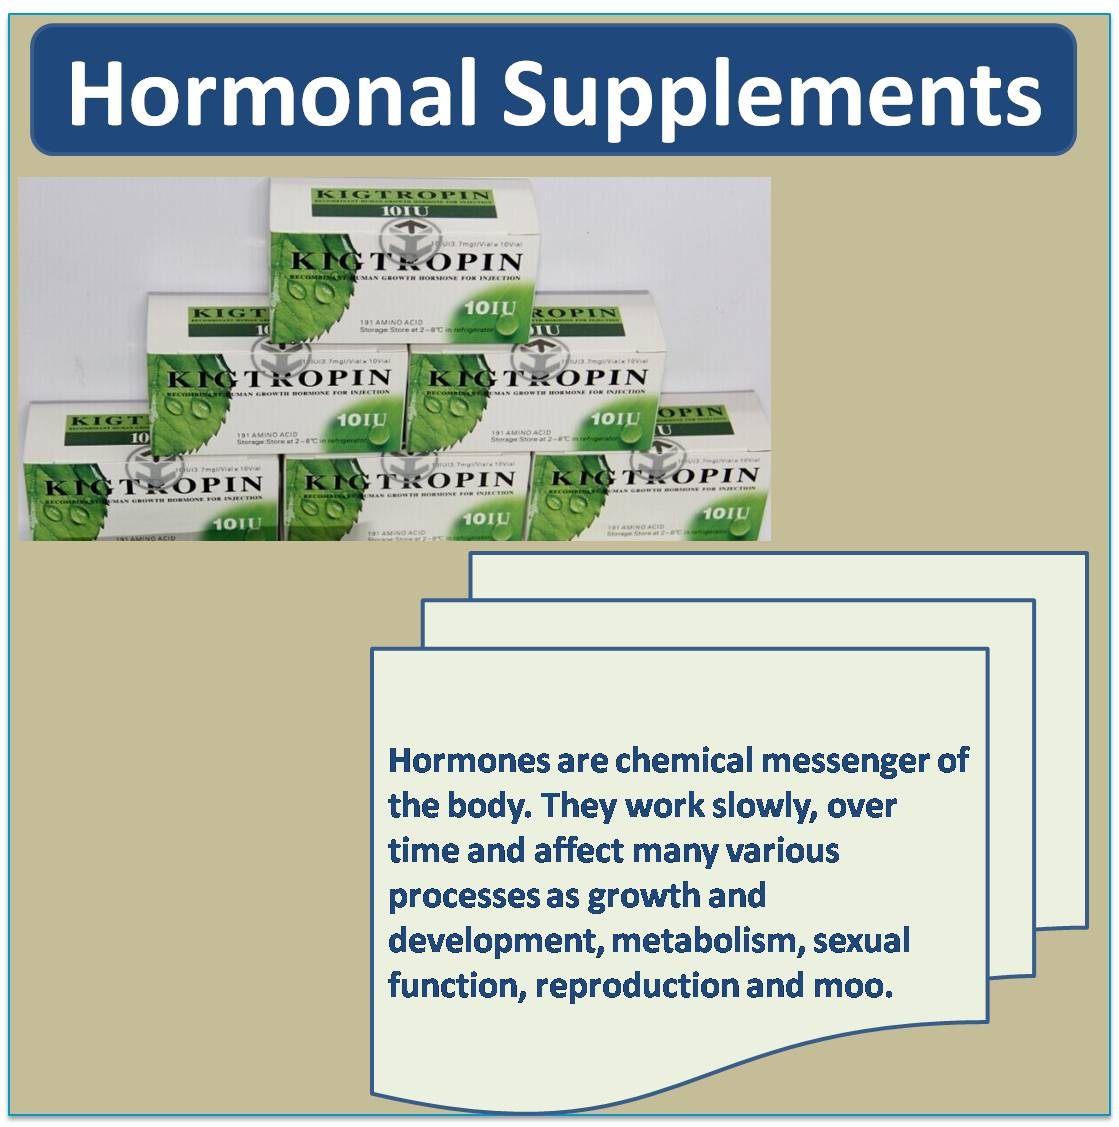 Hormonal Supplements